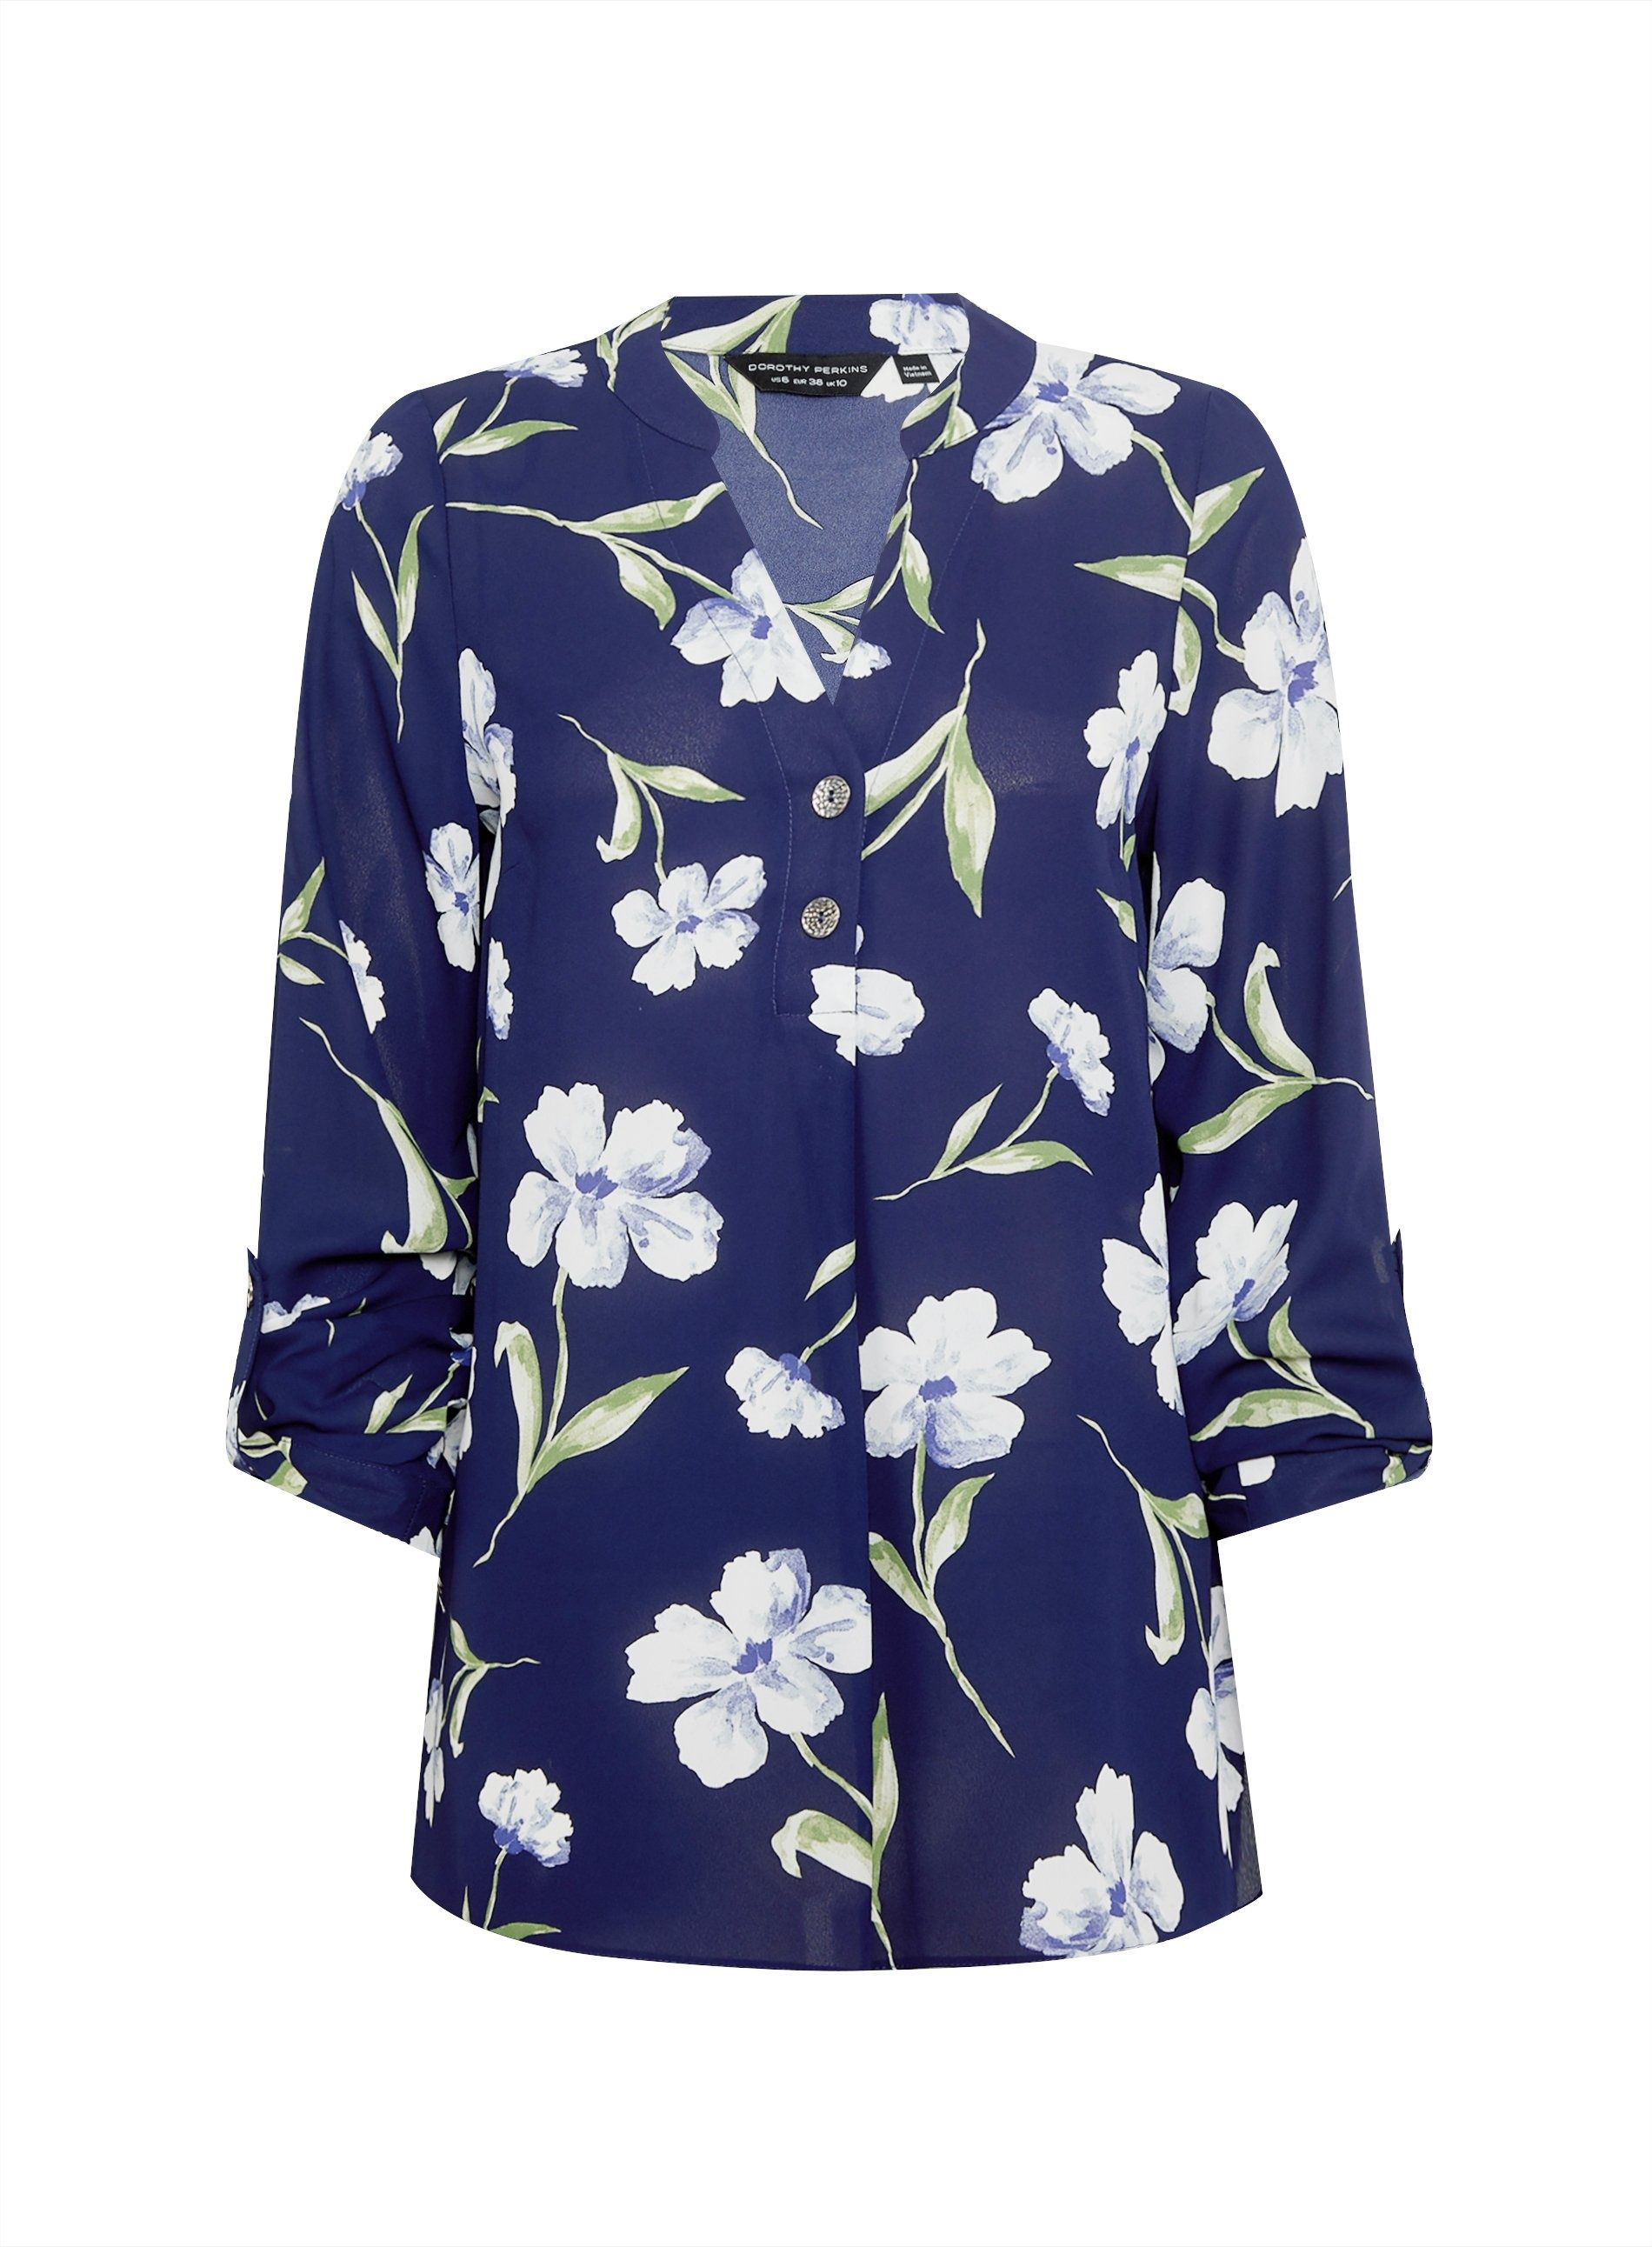 Dorothy Perkins Womens Navy Blue Floral Print Two Button Roll Sleeve Top